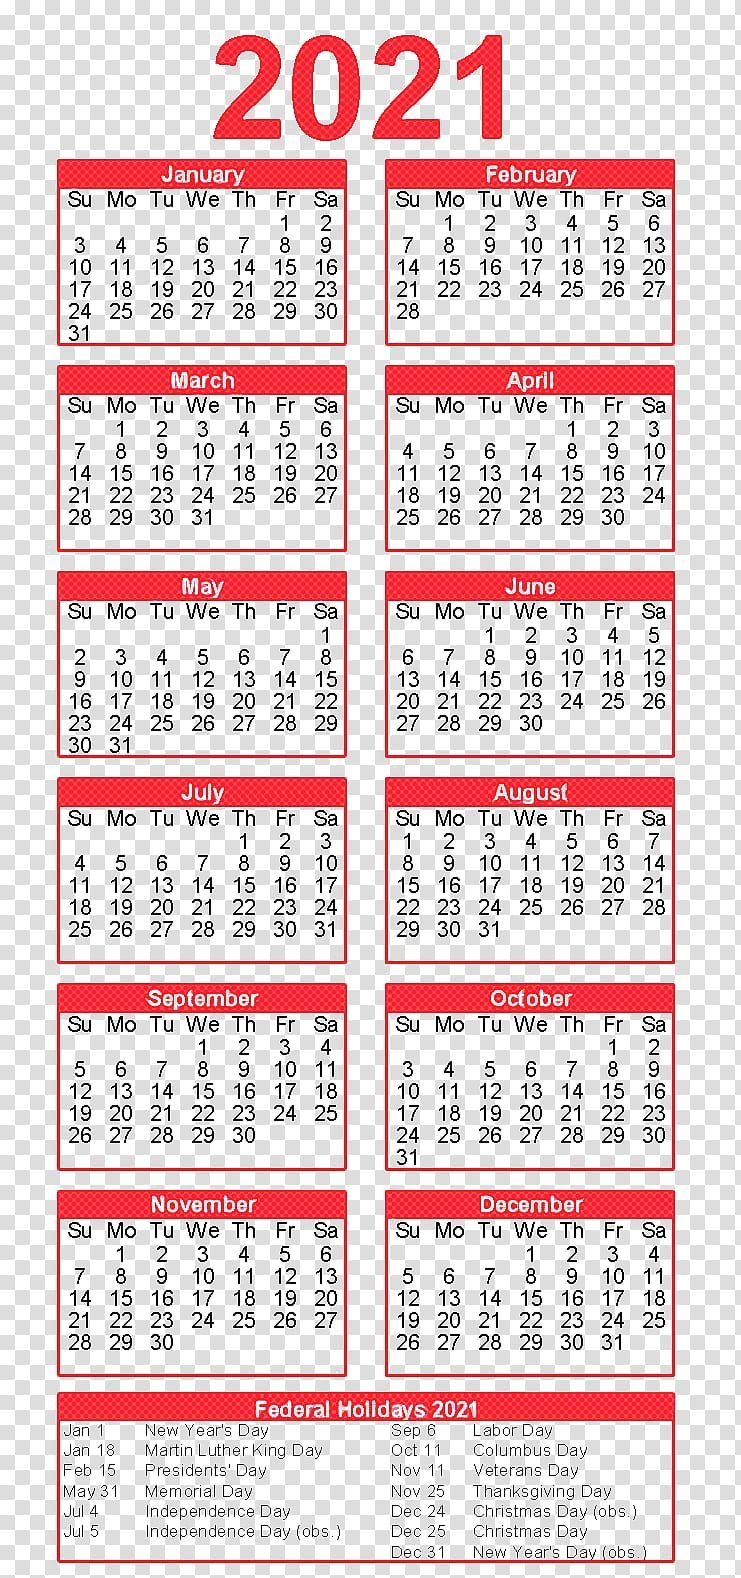 Calendar For 2021 With Holidays And Ramadan : Please Note